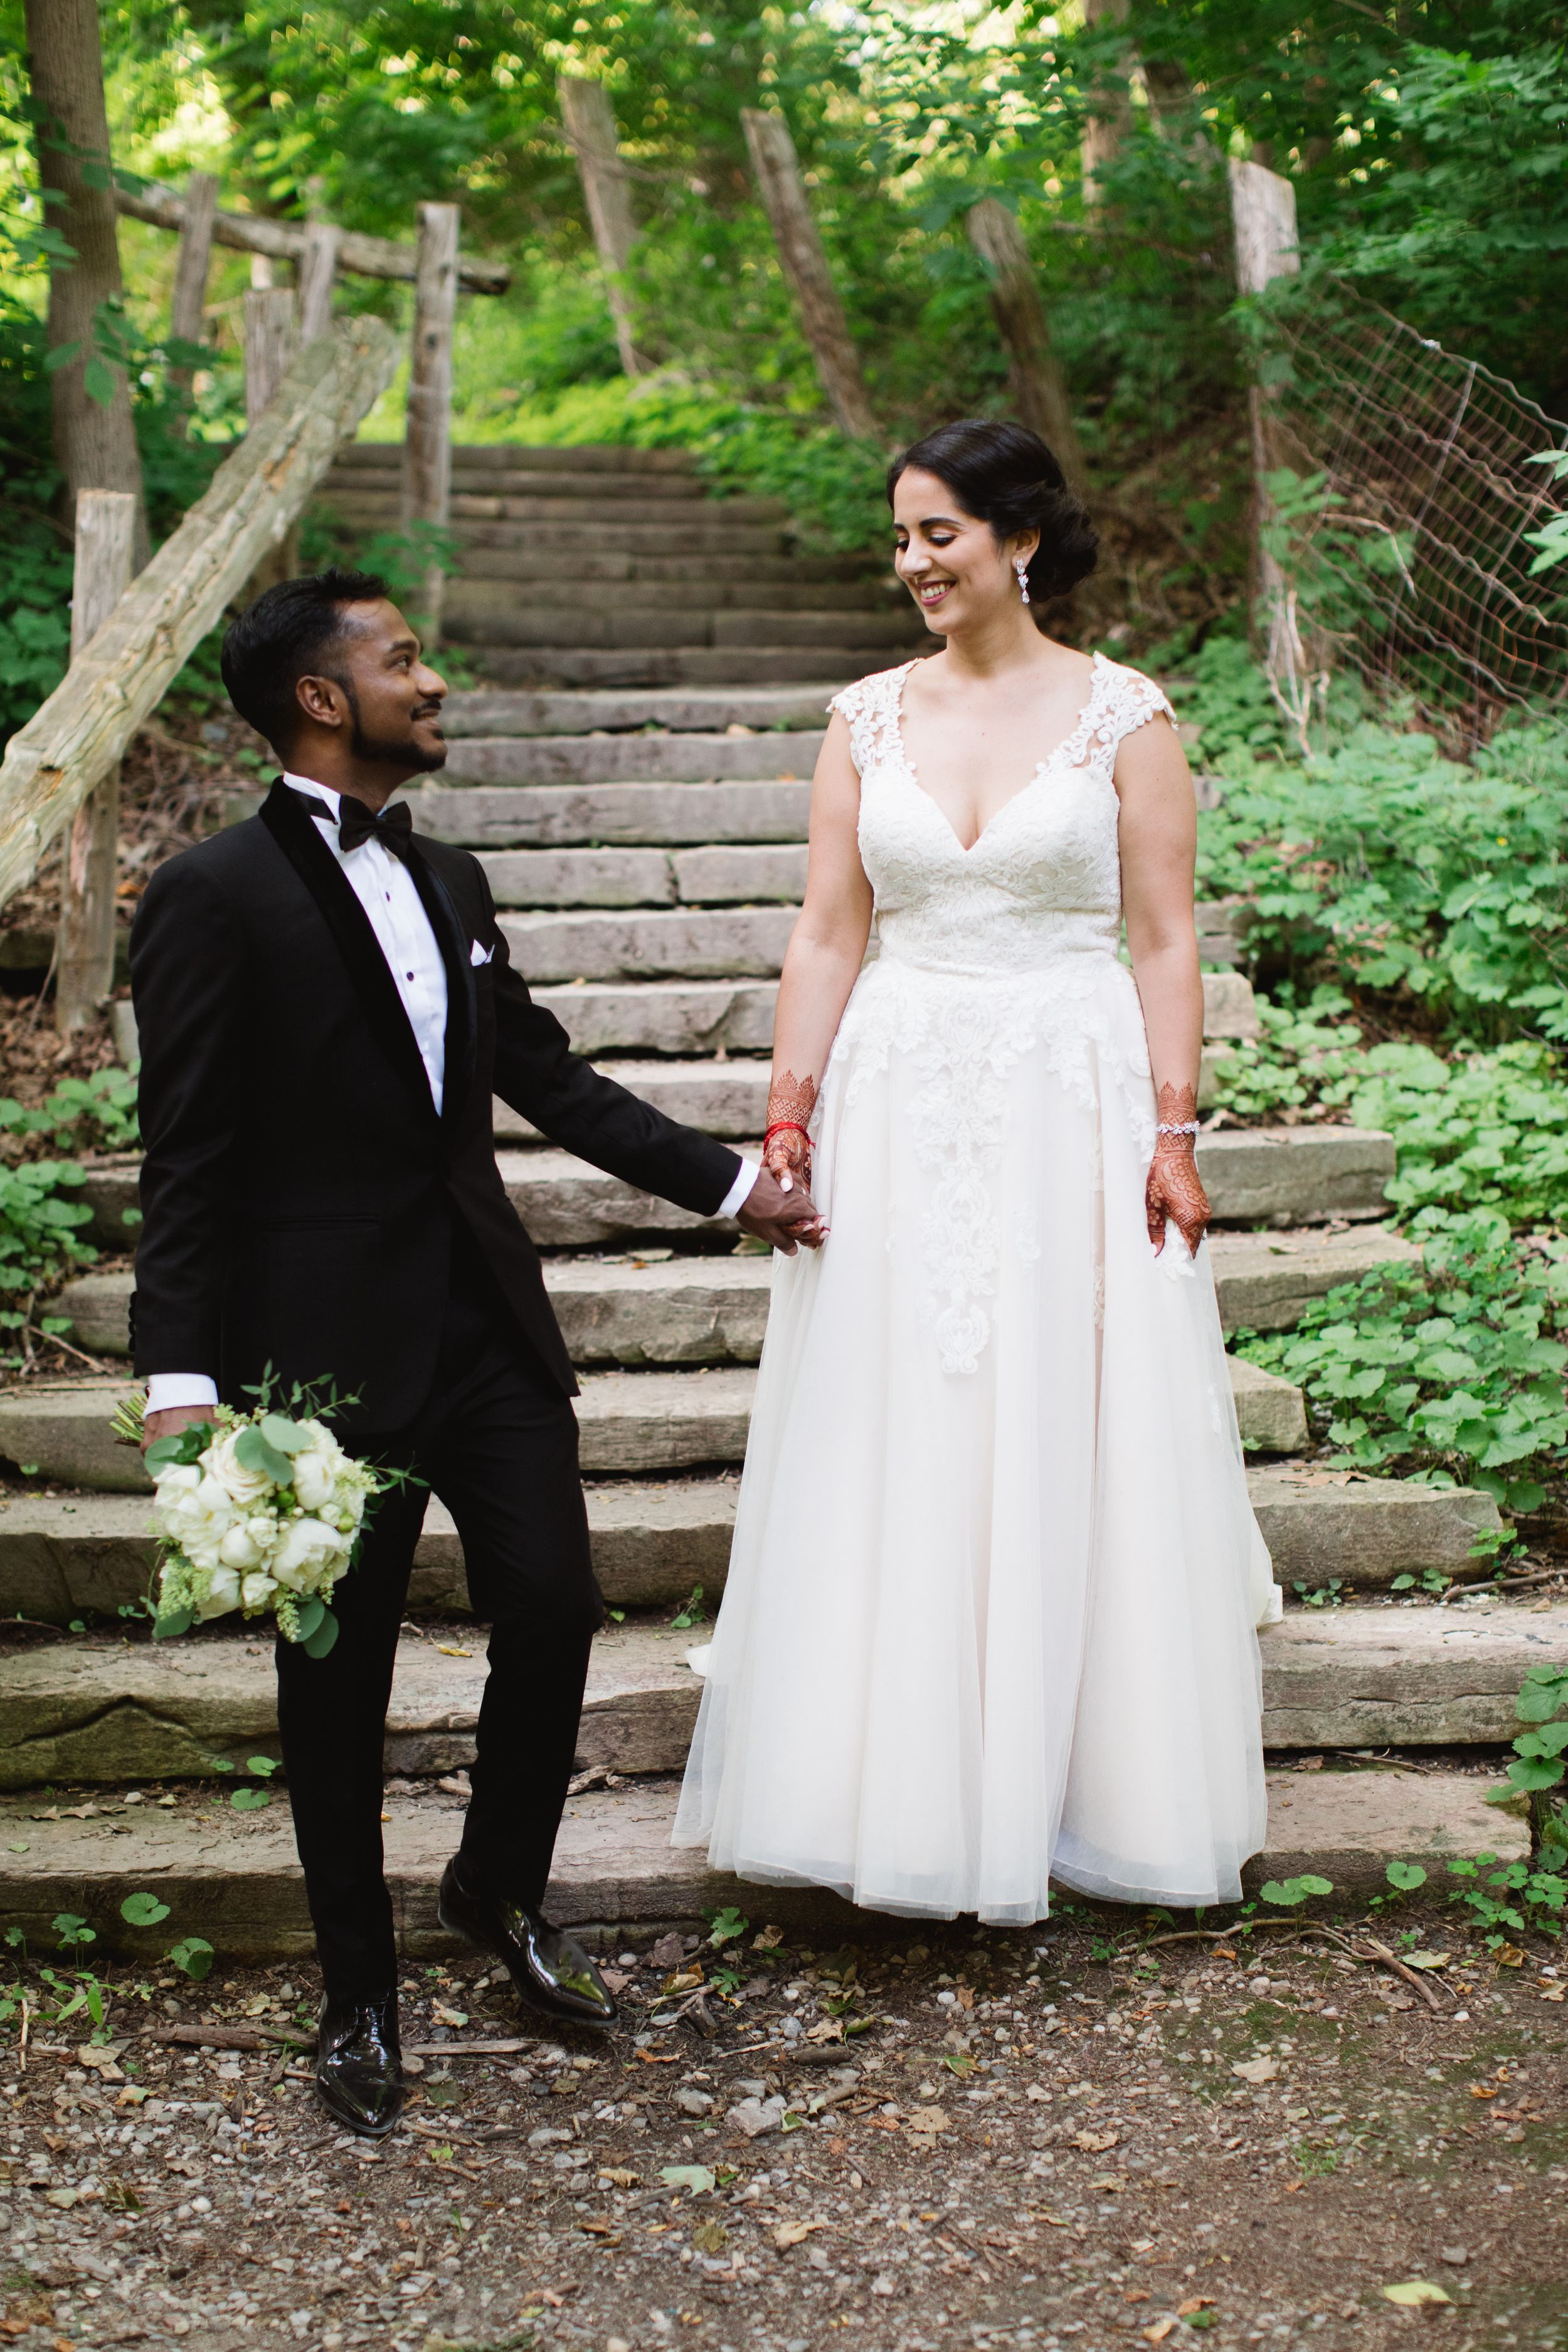 bride and groom looking at each other smiling on stairs in forest